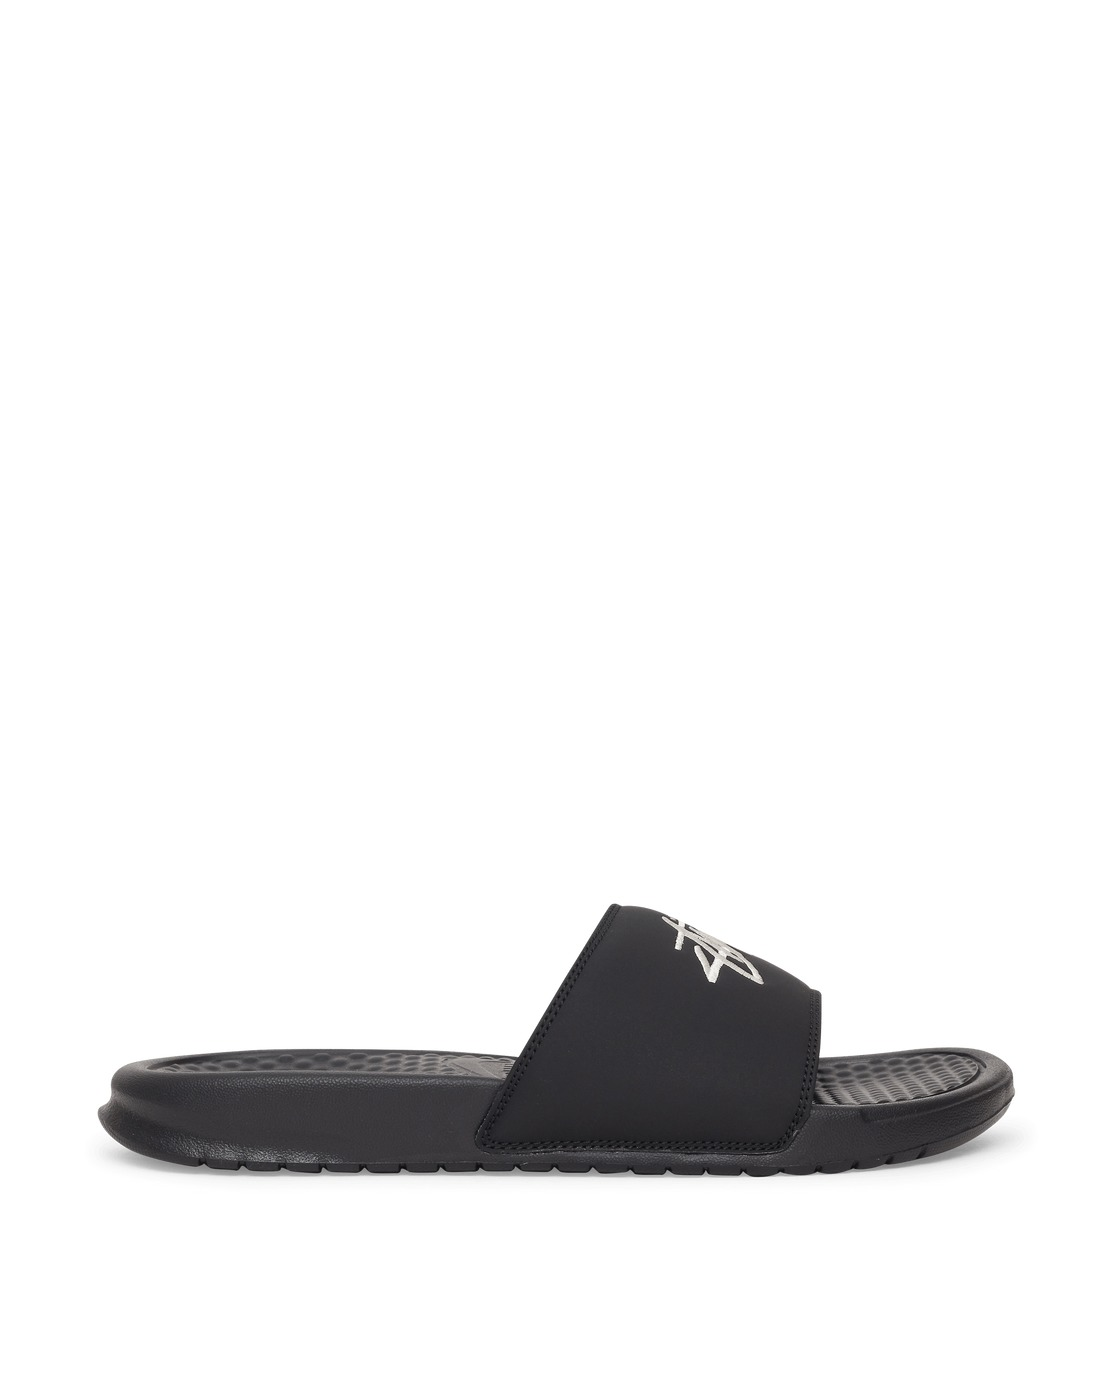 Photo: Nike X Stussy Stüssy Benassi Slides Black/Sail